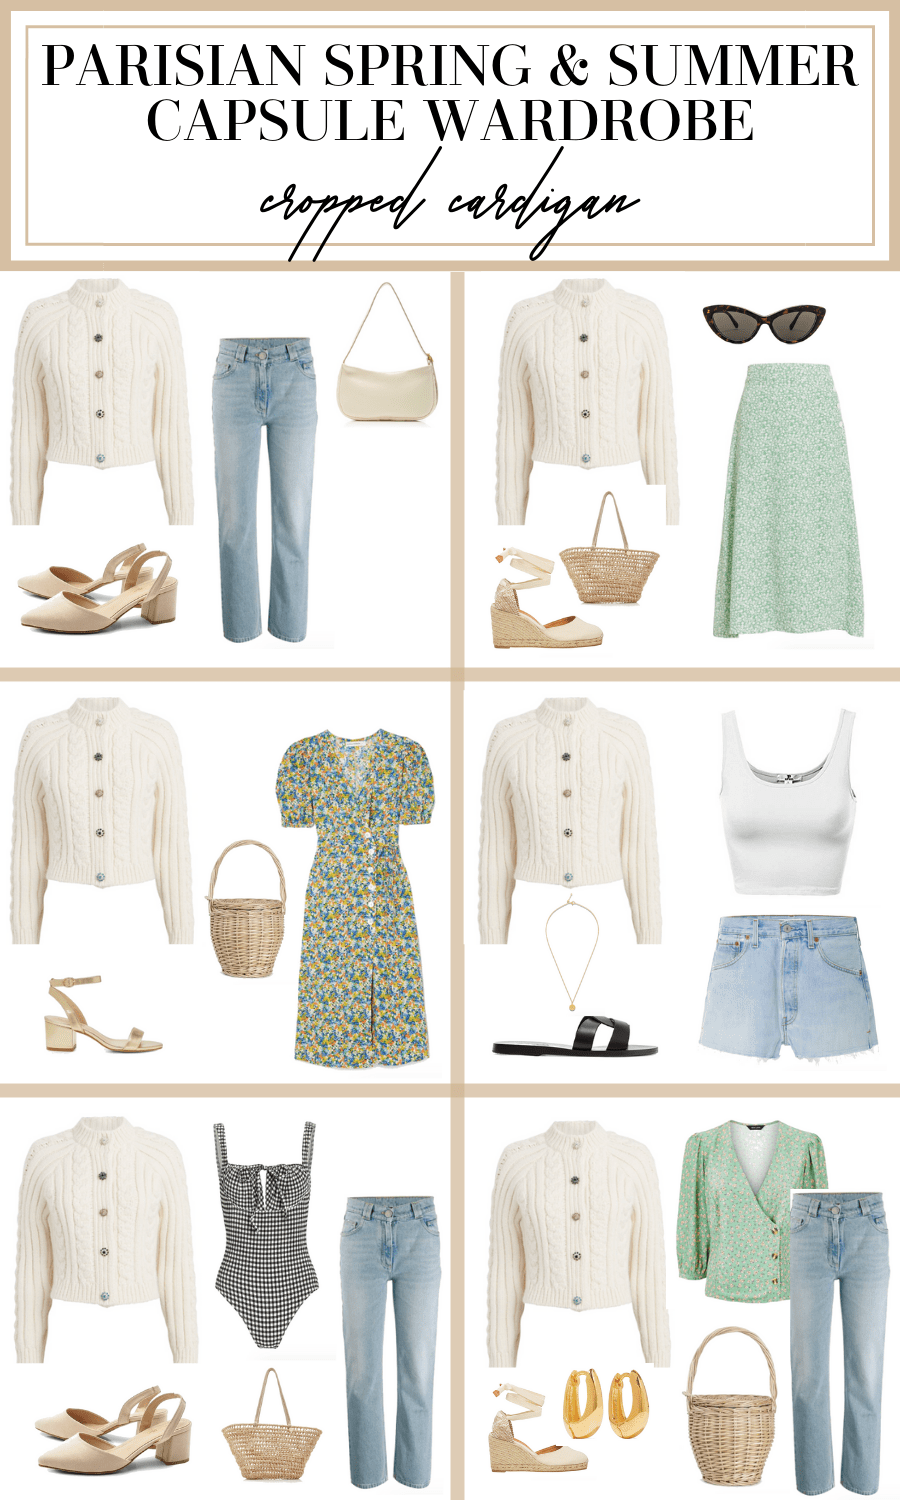 How to Create a French Capsule Wardrobe for Spring & Summer - MY CHIC OBSESSION -   21 french style Spring ideas